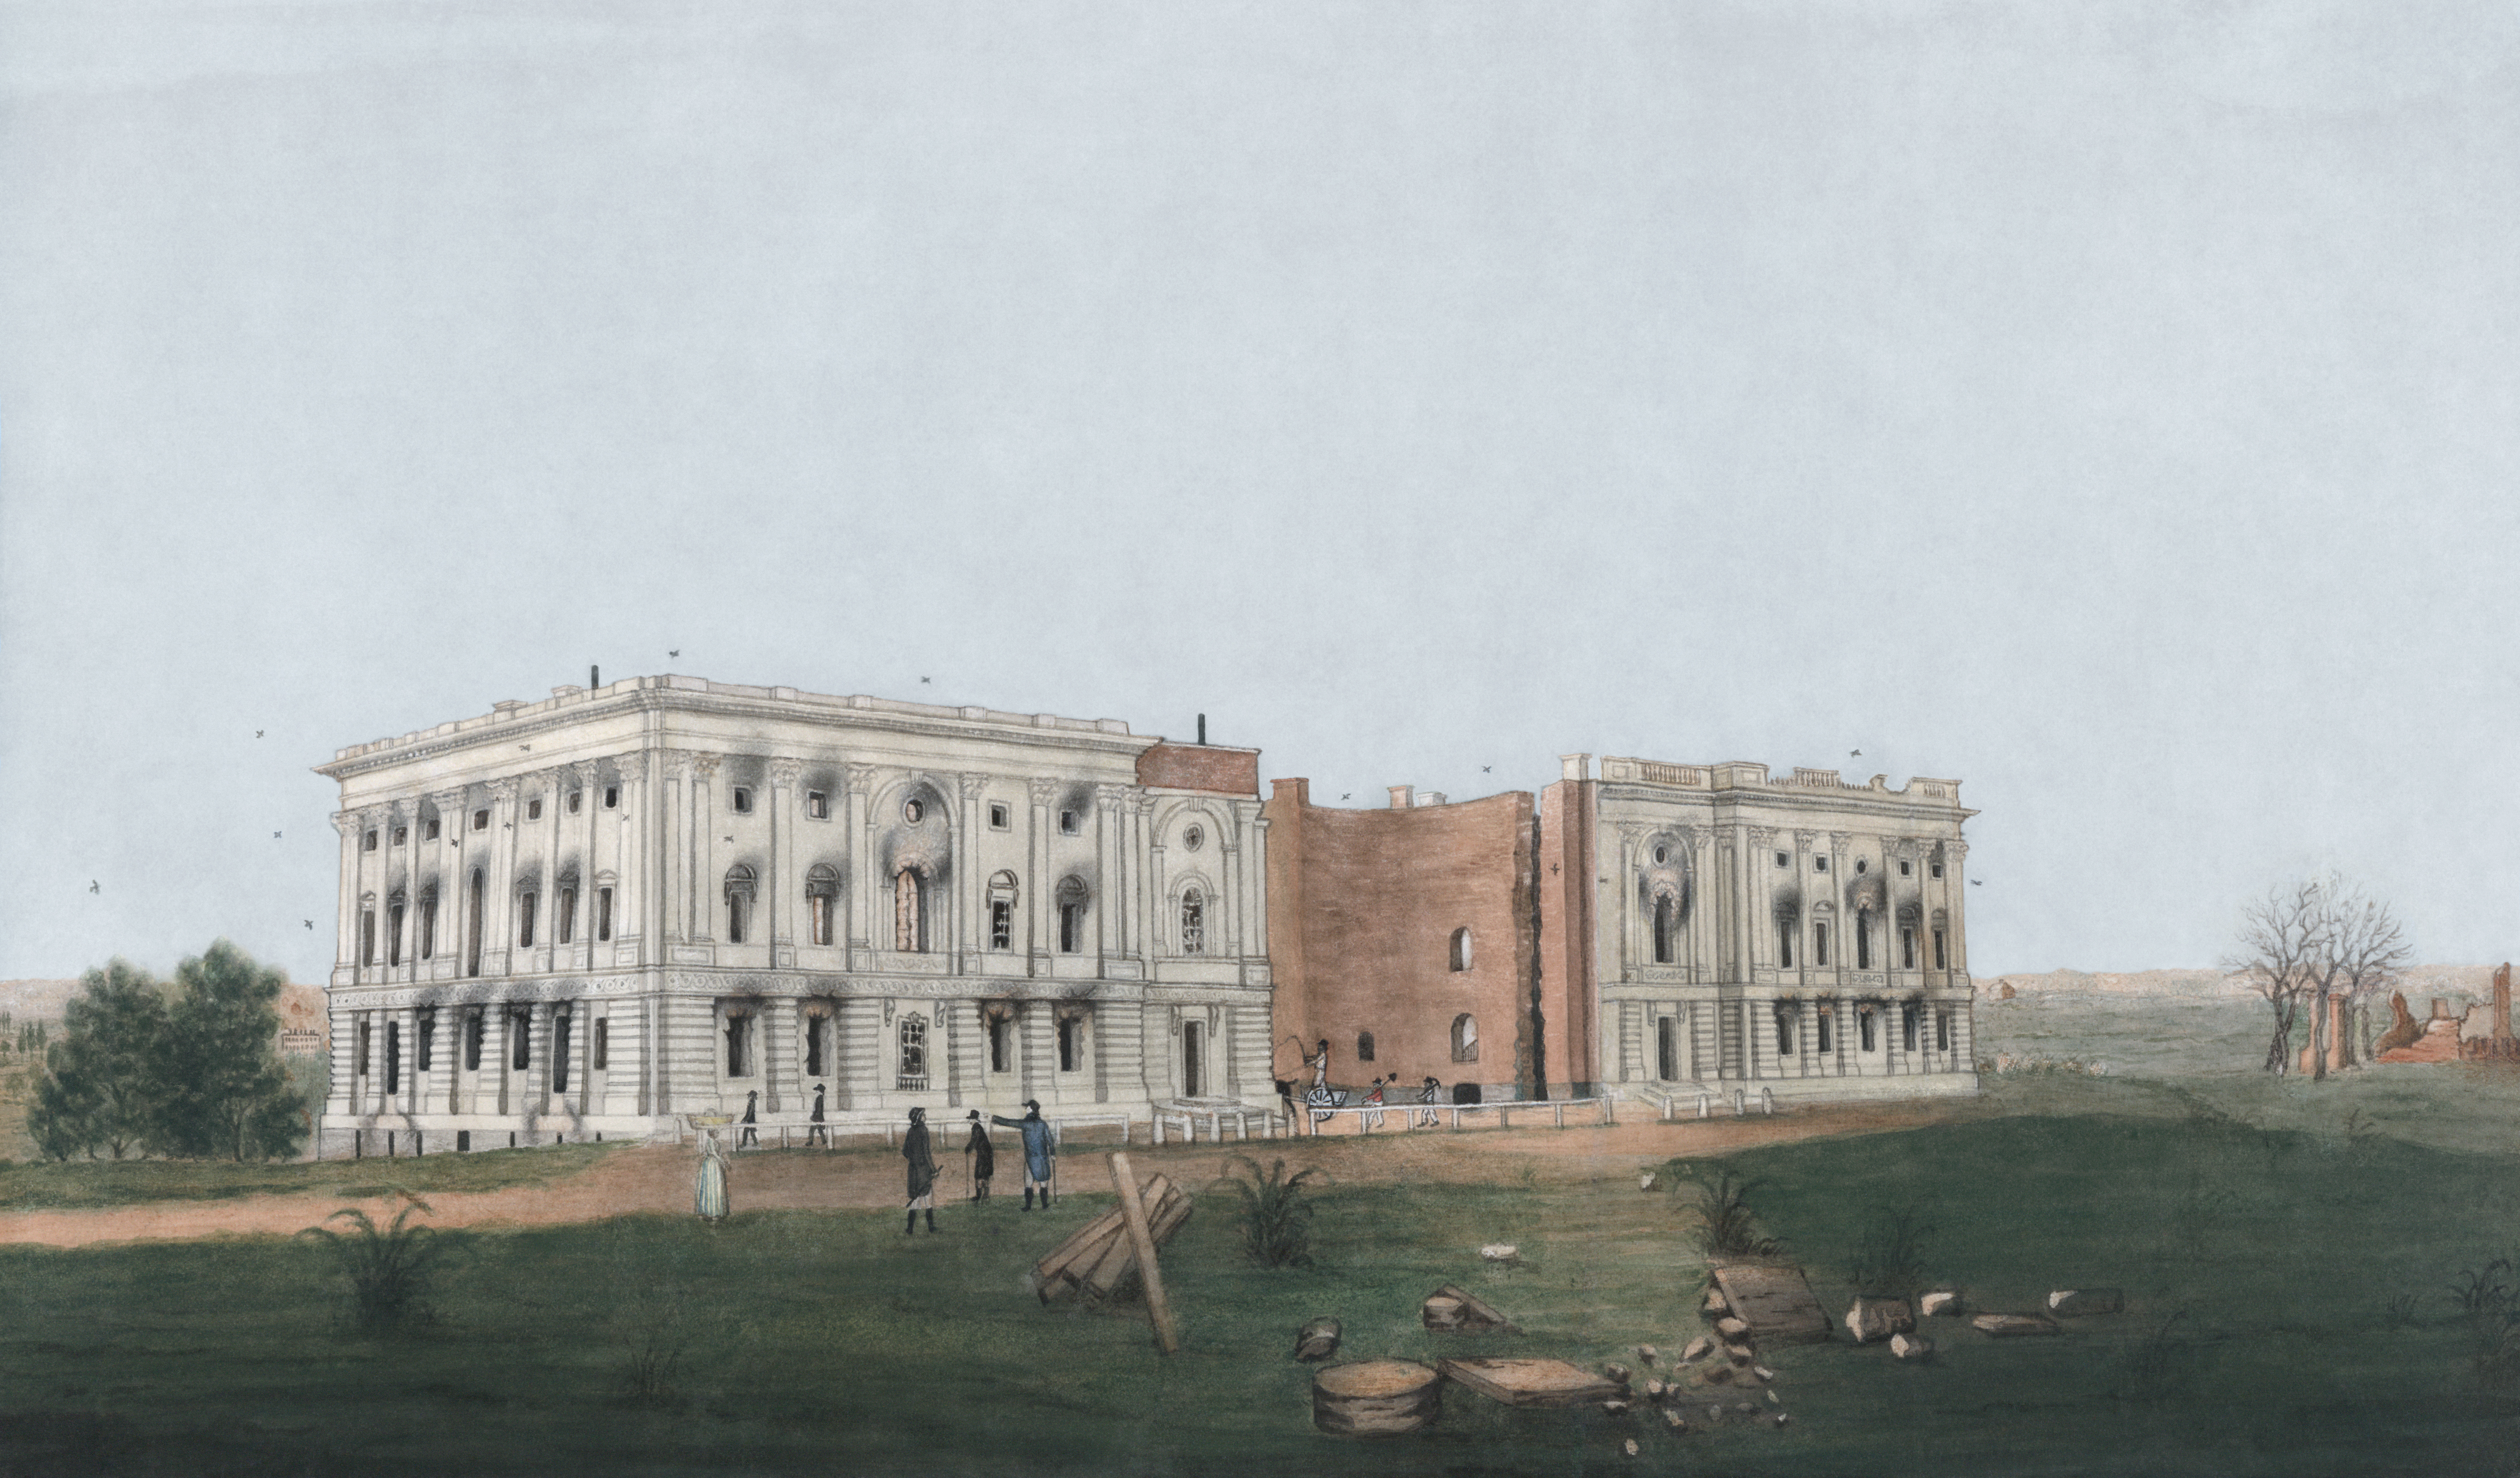 The United States Capitol after the burning of Washington in the War of 1812. Watercolor and ink depiction from 1814, restored.